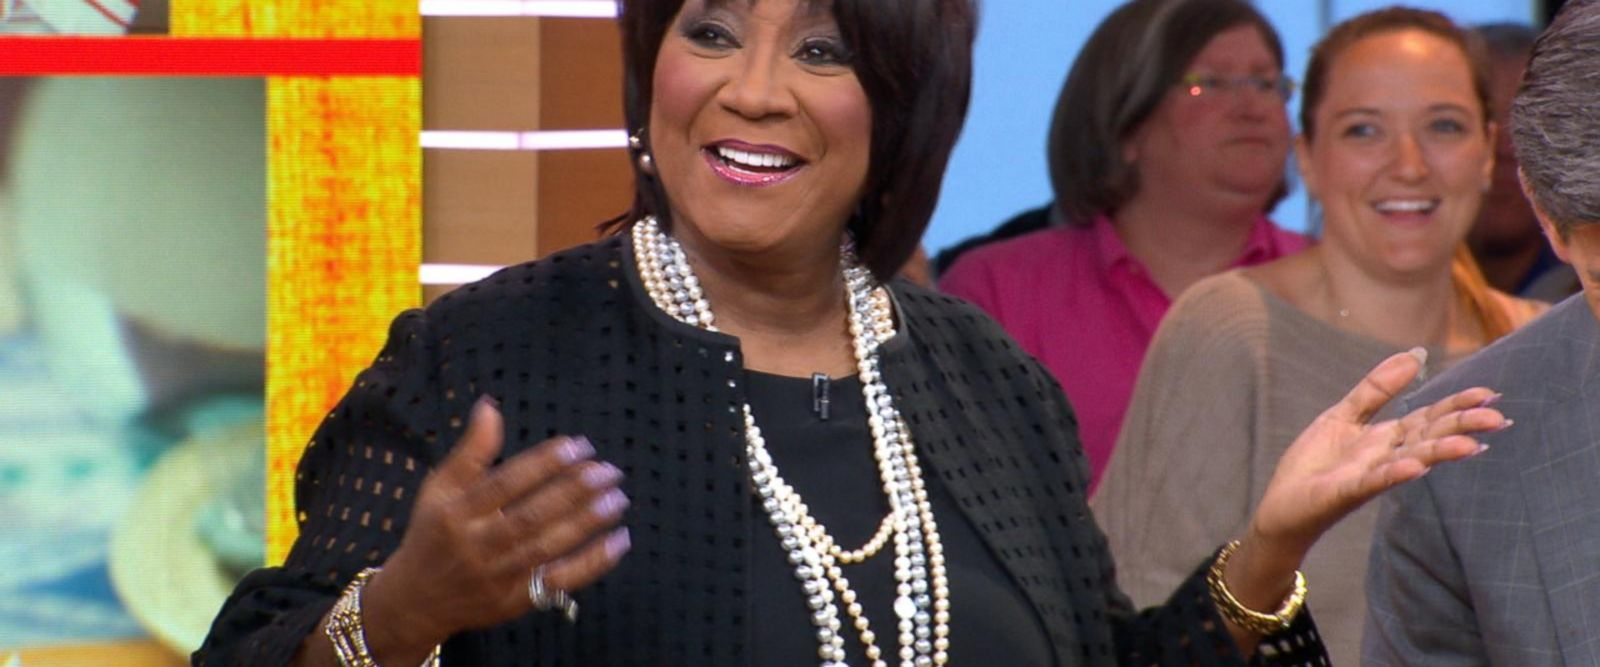 VIDEO: Pattie LaBelle showcases her famous pies live on 'GMA'